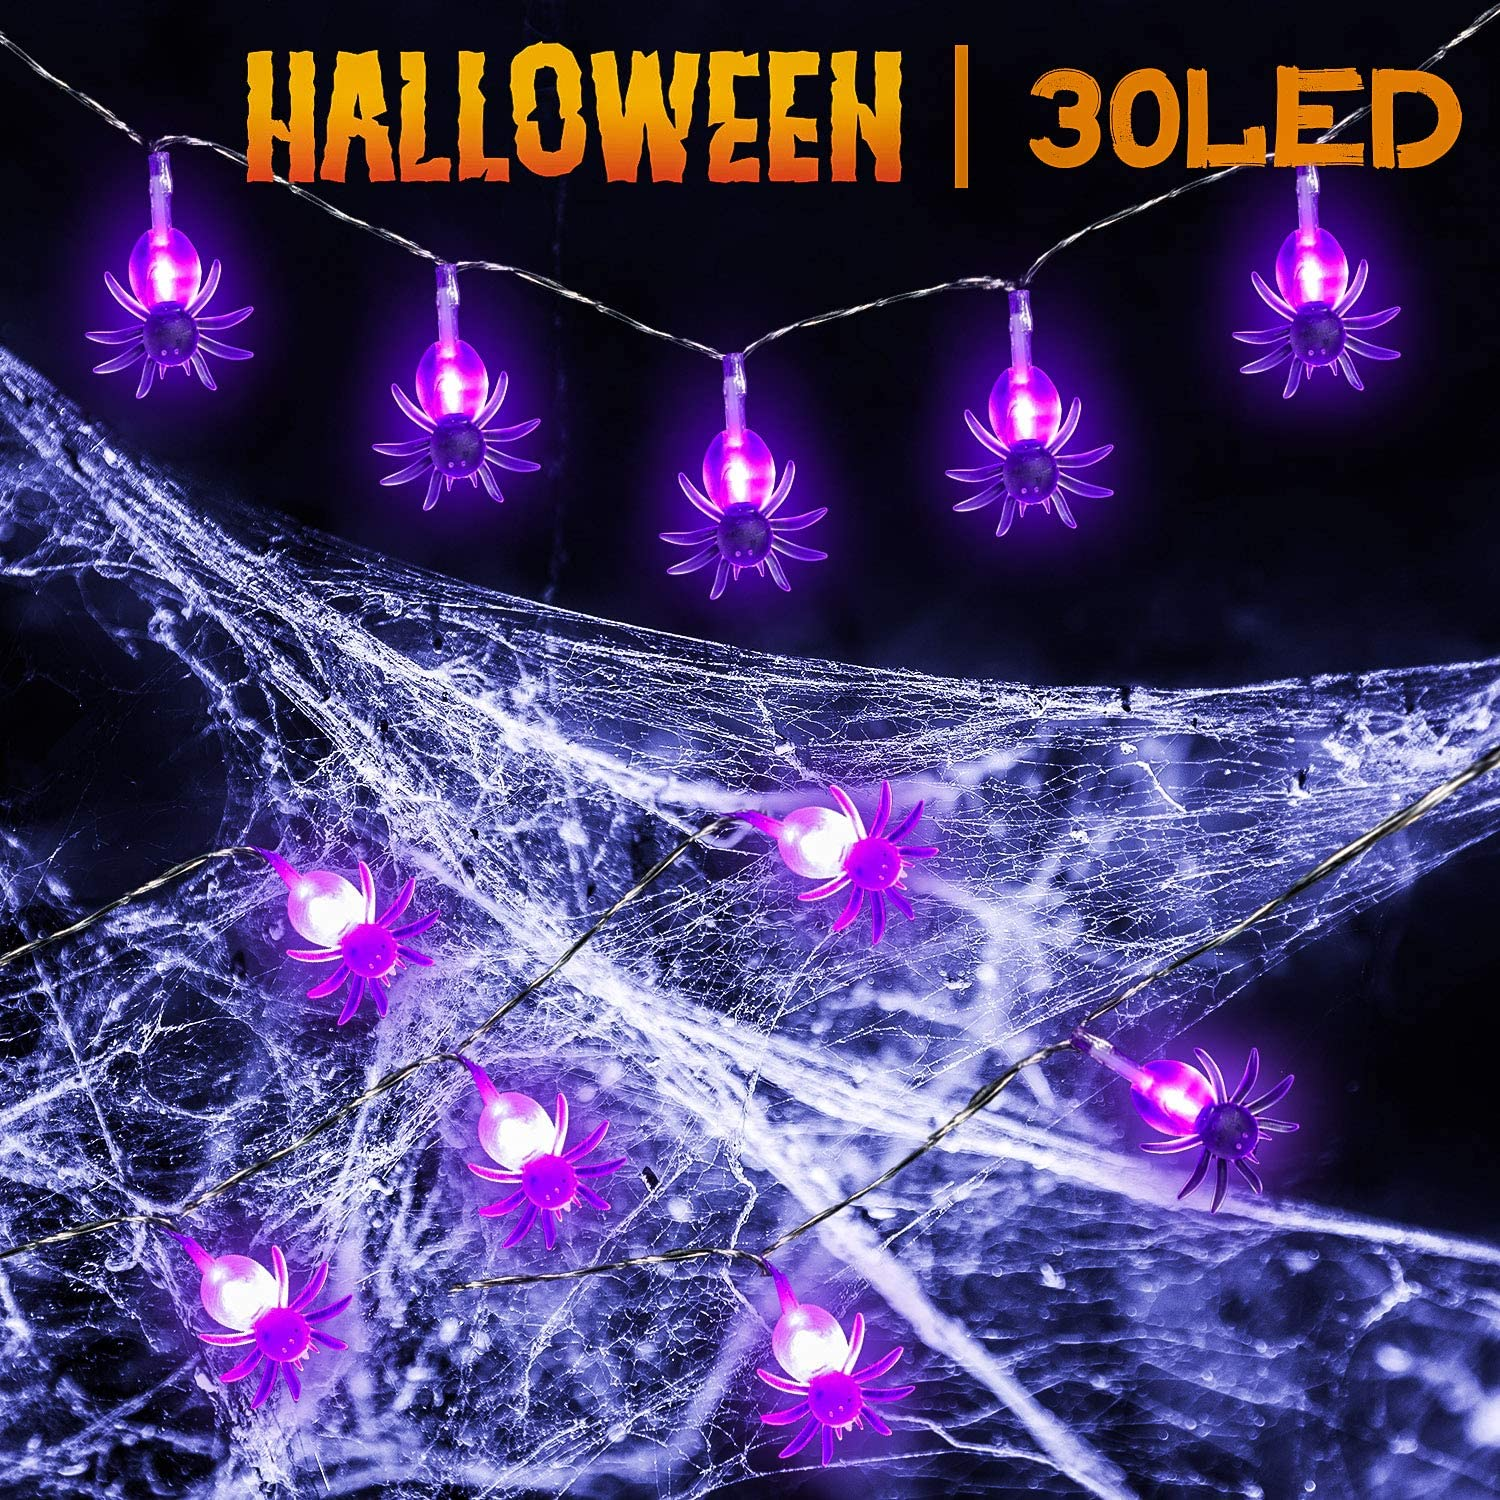 Halloween Spider Lights 30 LEDs Spider String Lights 9.8 Feet Battery Operated Purple Halloween String Lights 2 Modes Spooky Wall Decoration Lights for Halloween Window Porch Outdoor Indoor Decor